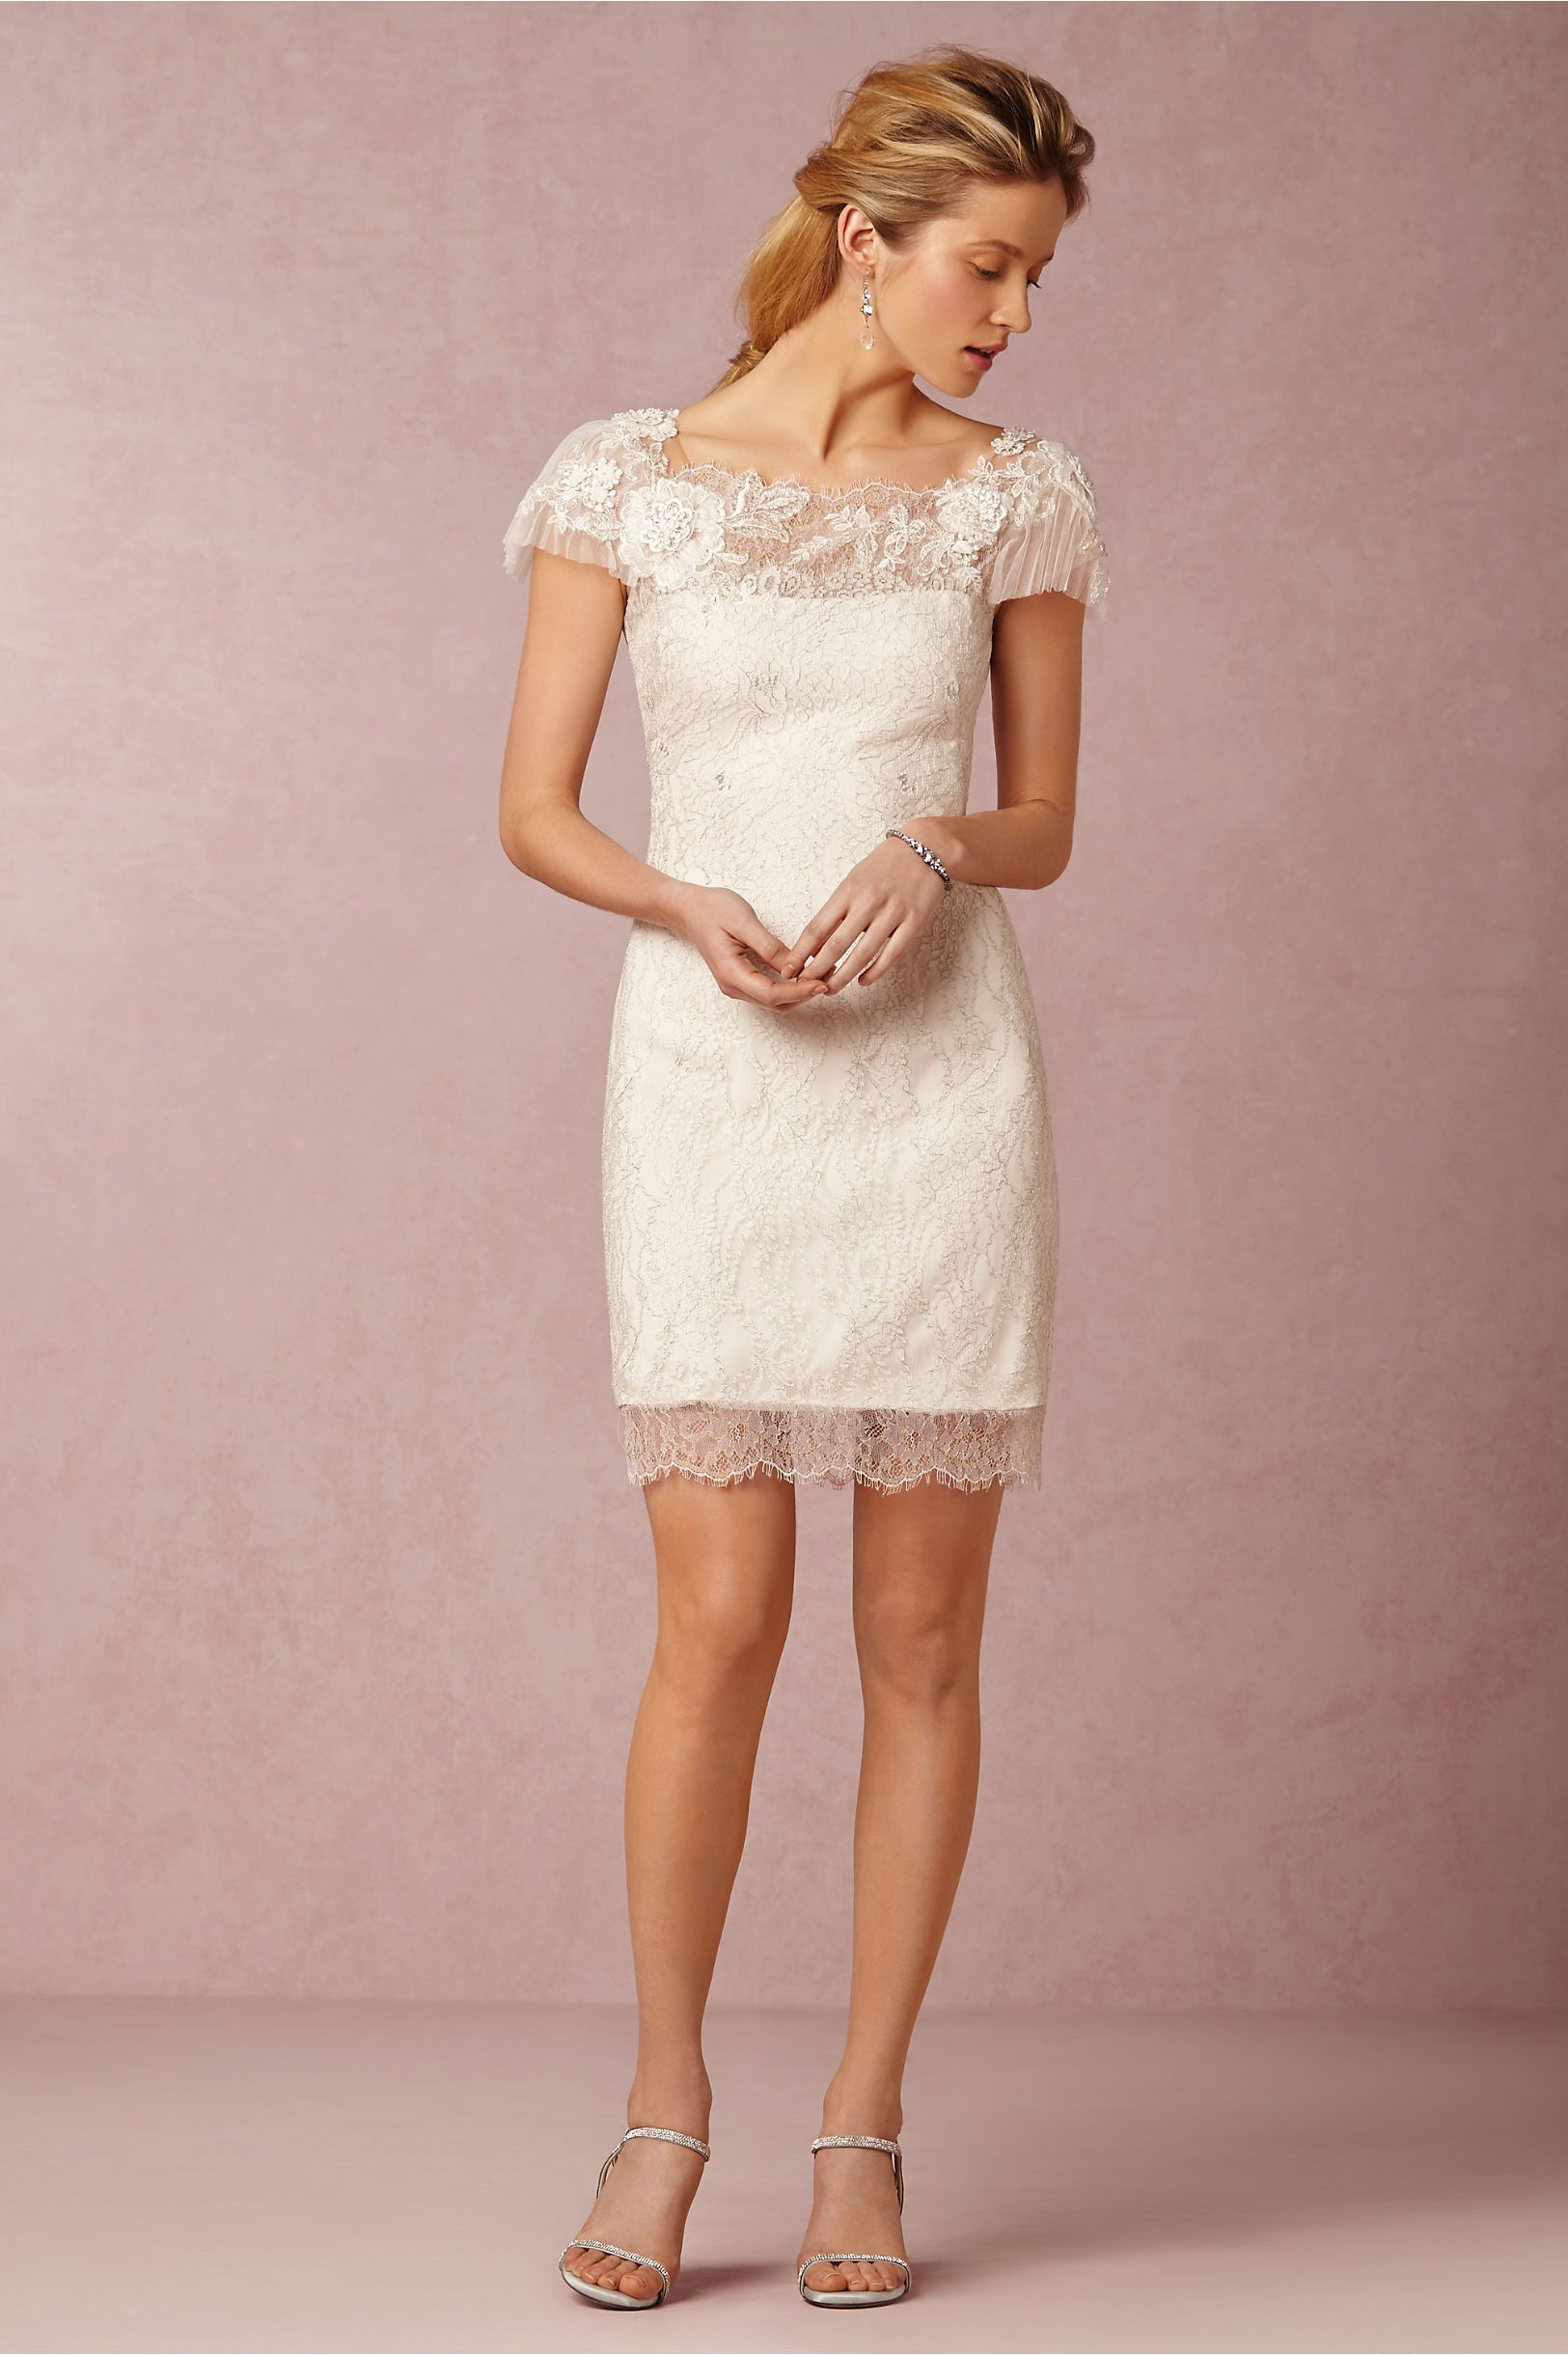 5dfe7390210d3 Shined Cocktail Dress in New at BHLDN Robe De Soirée